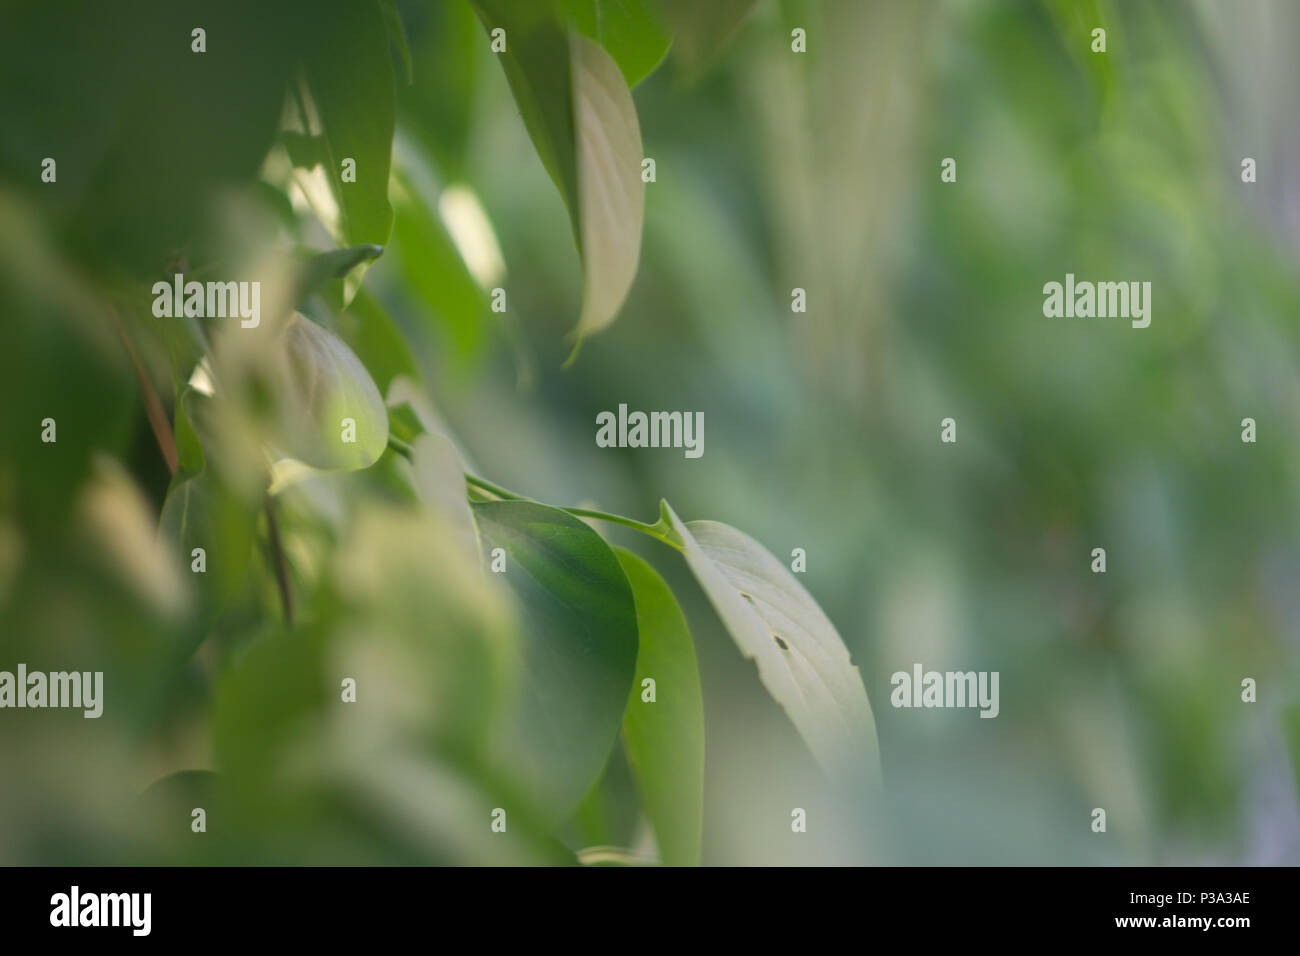 Green leaves of a tree. Has a fresh and a calming feeling. Close-up photo with a blurred background. - Stock Image